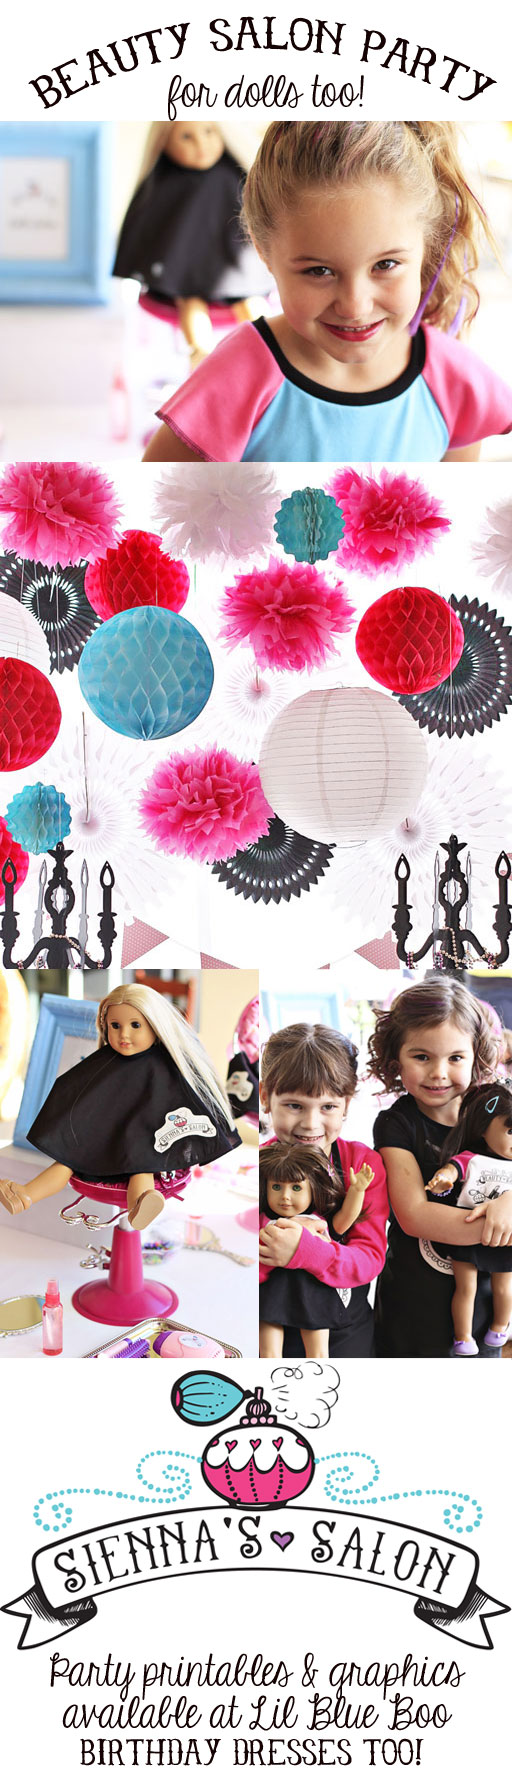 A Beauty Salon Glam Birthday Party with Mini Doll Salon via lilblueboo.com